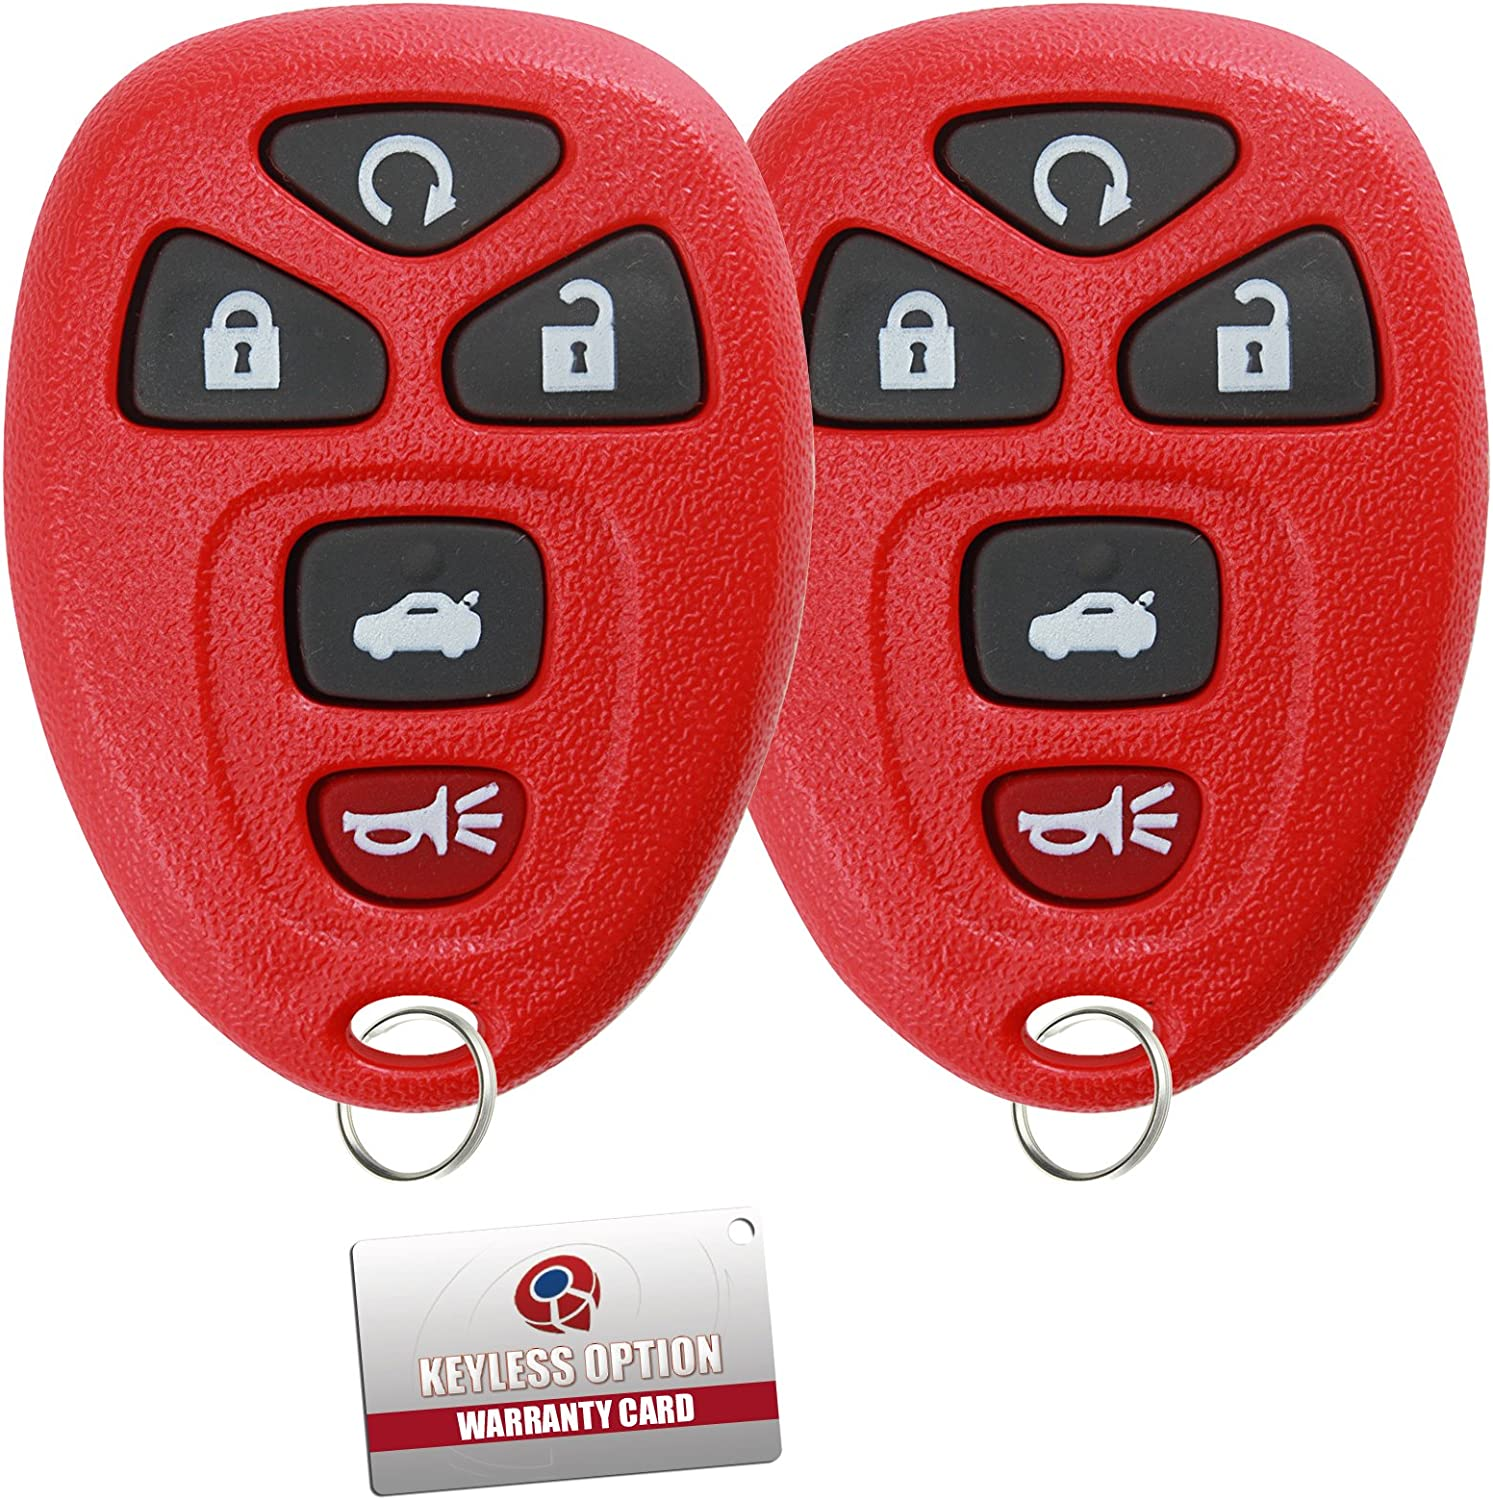 Pack of 2 KeylessOption Keyless Entry Remote Control Car Key Fob Replacement for 15912860